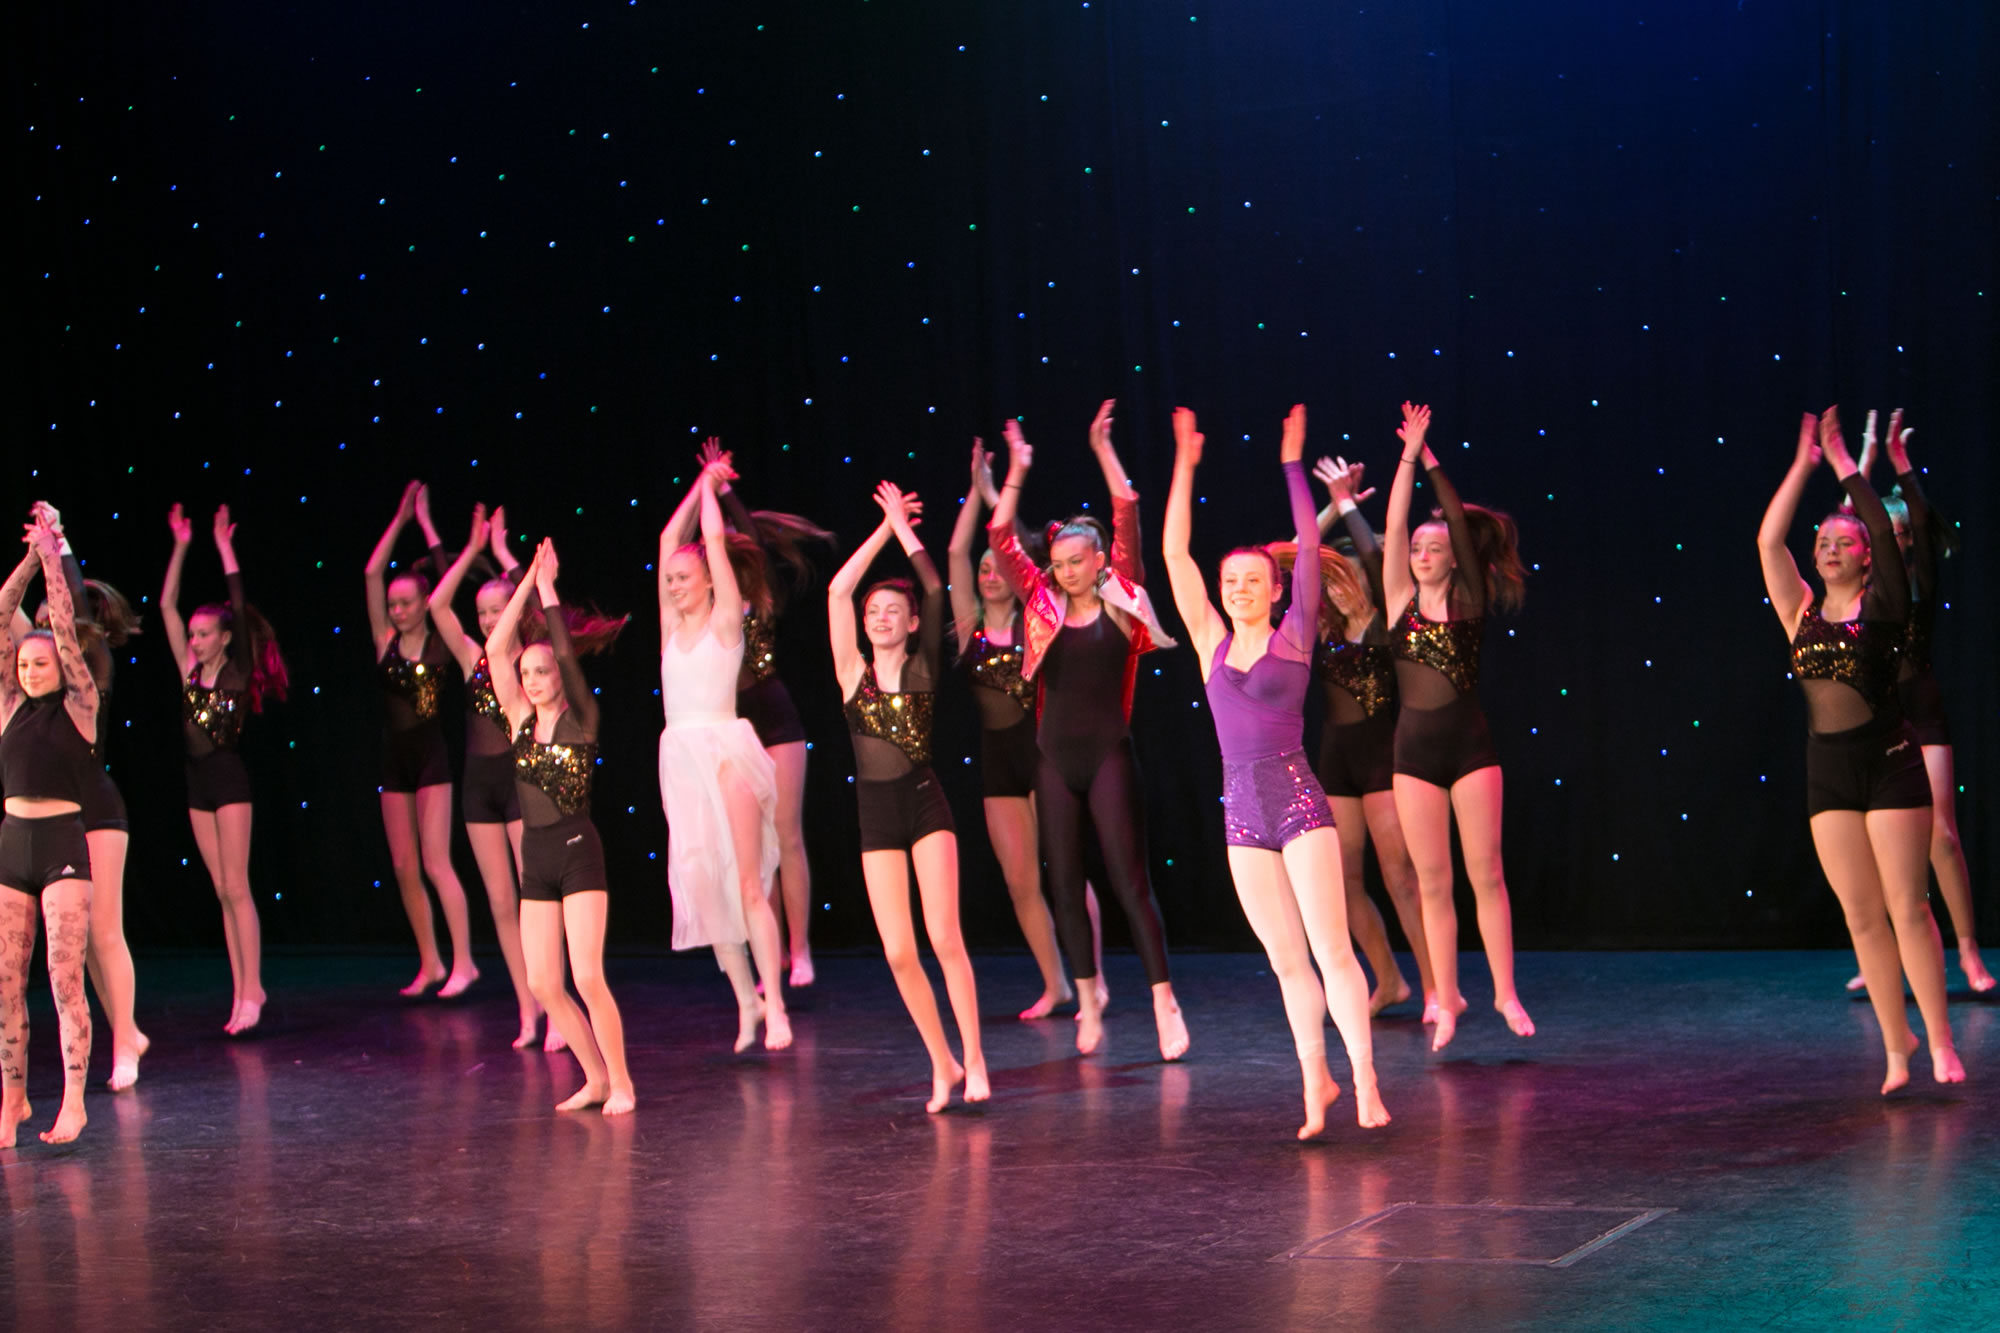 Hitchin_School_of_Dance_Show_2019-SM1_1875.jpg